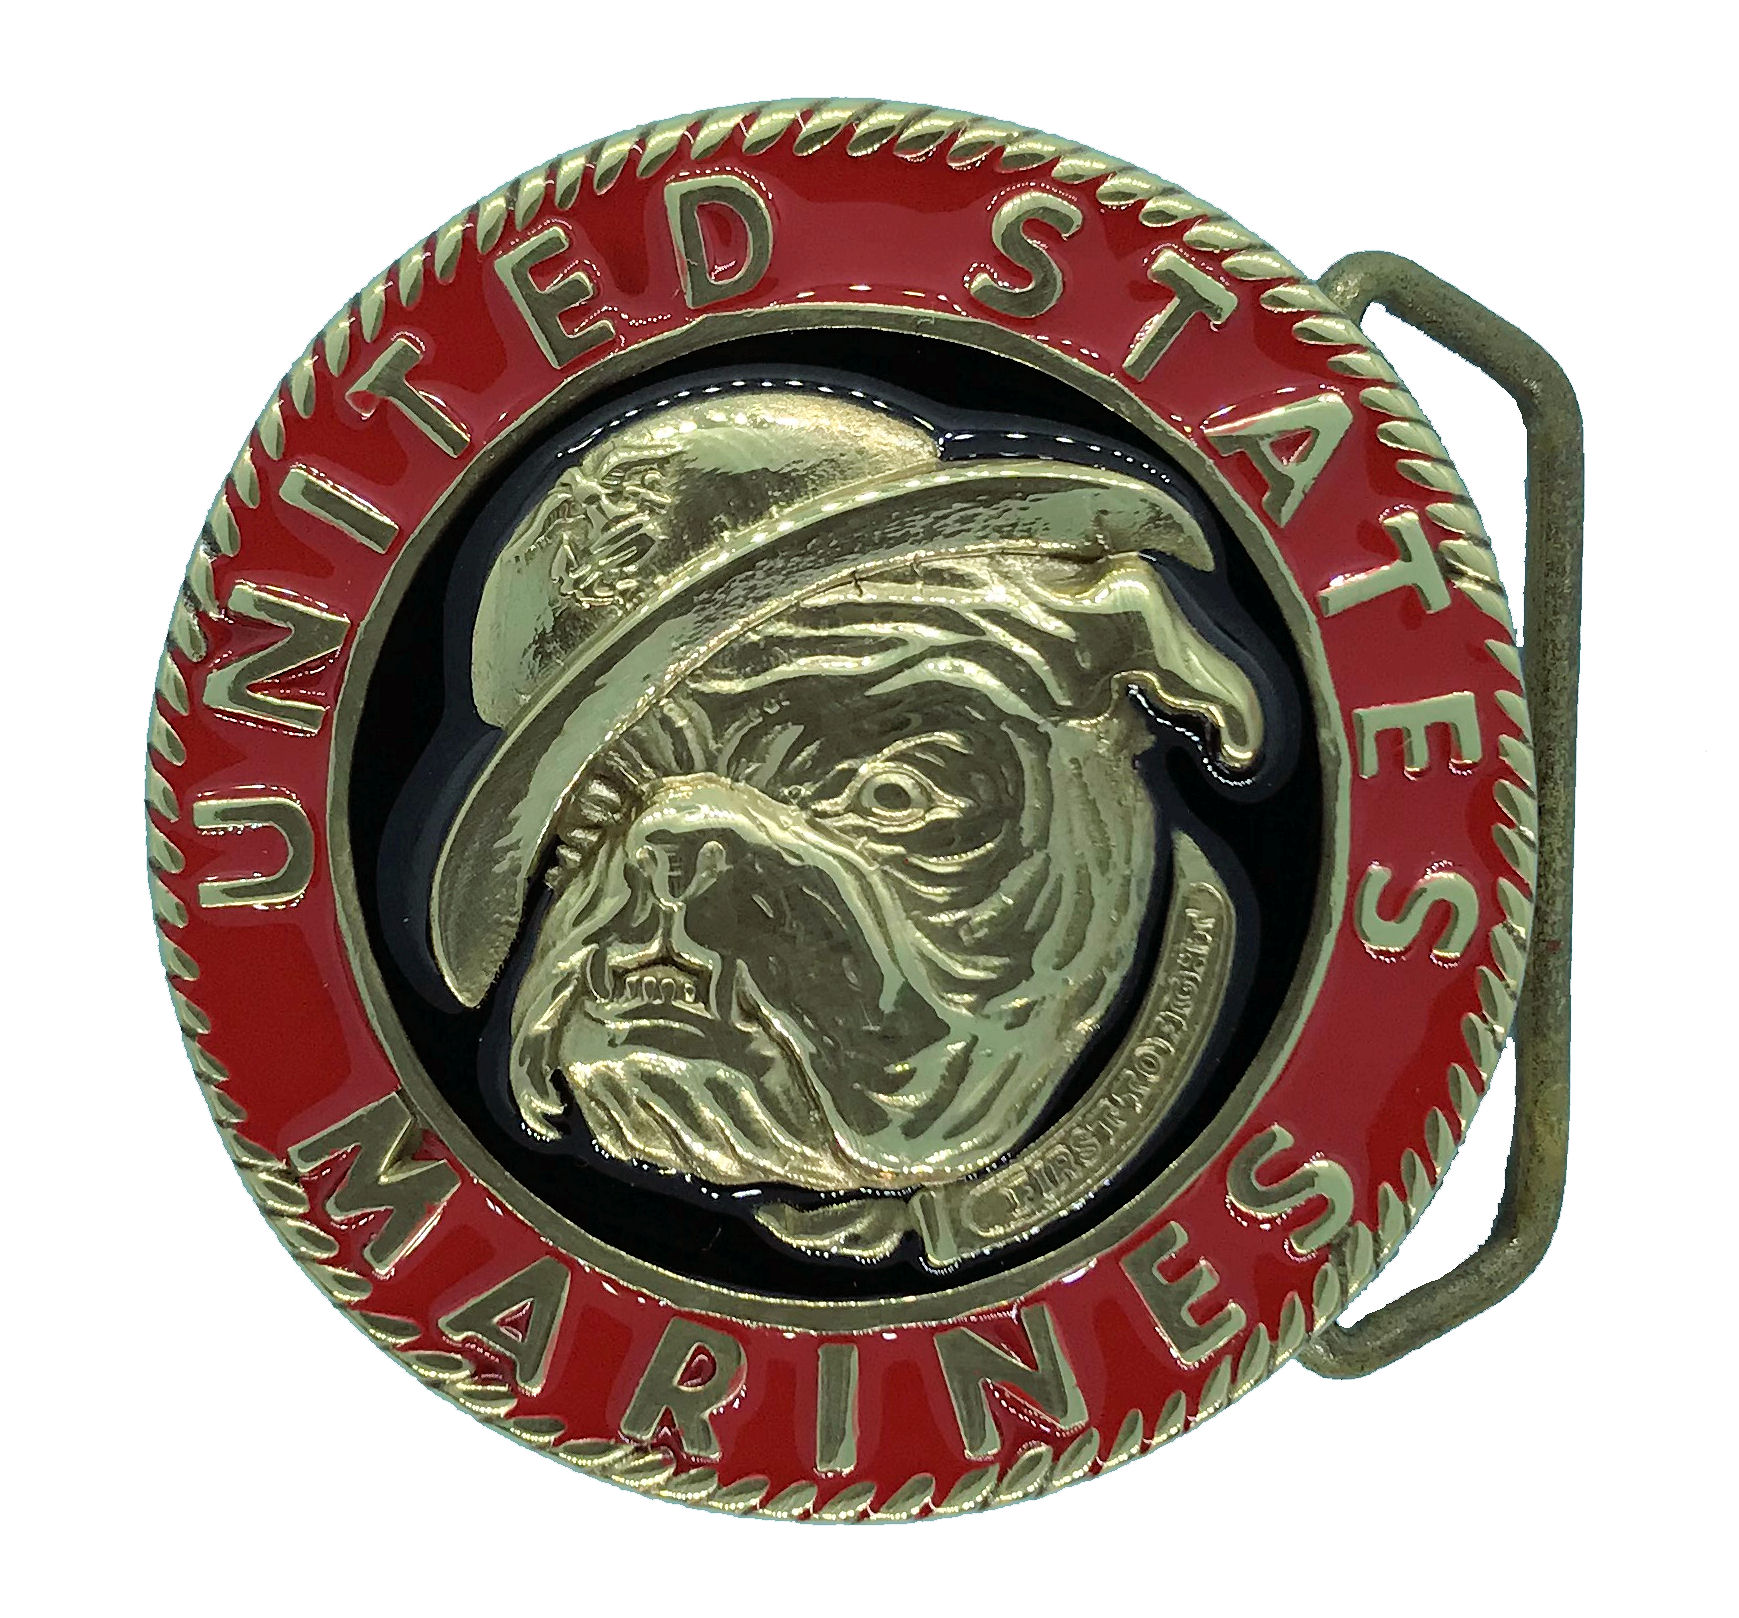 Marine Bulldog Brass Belt Buckle